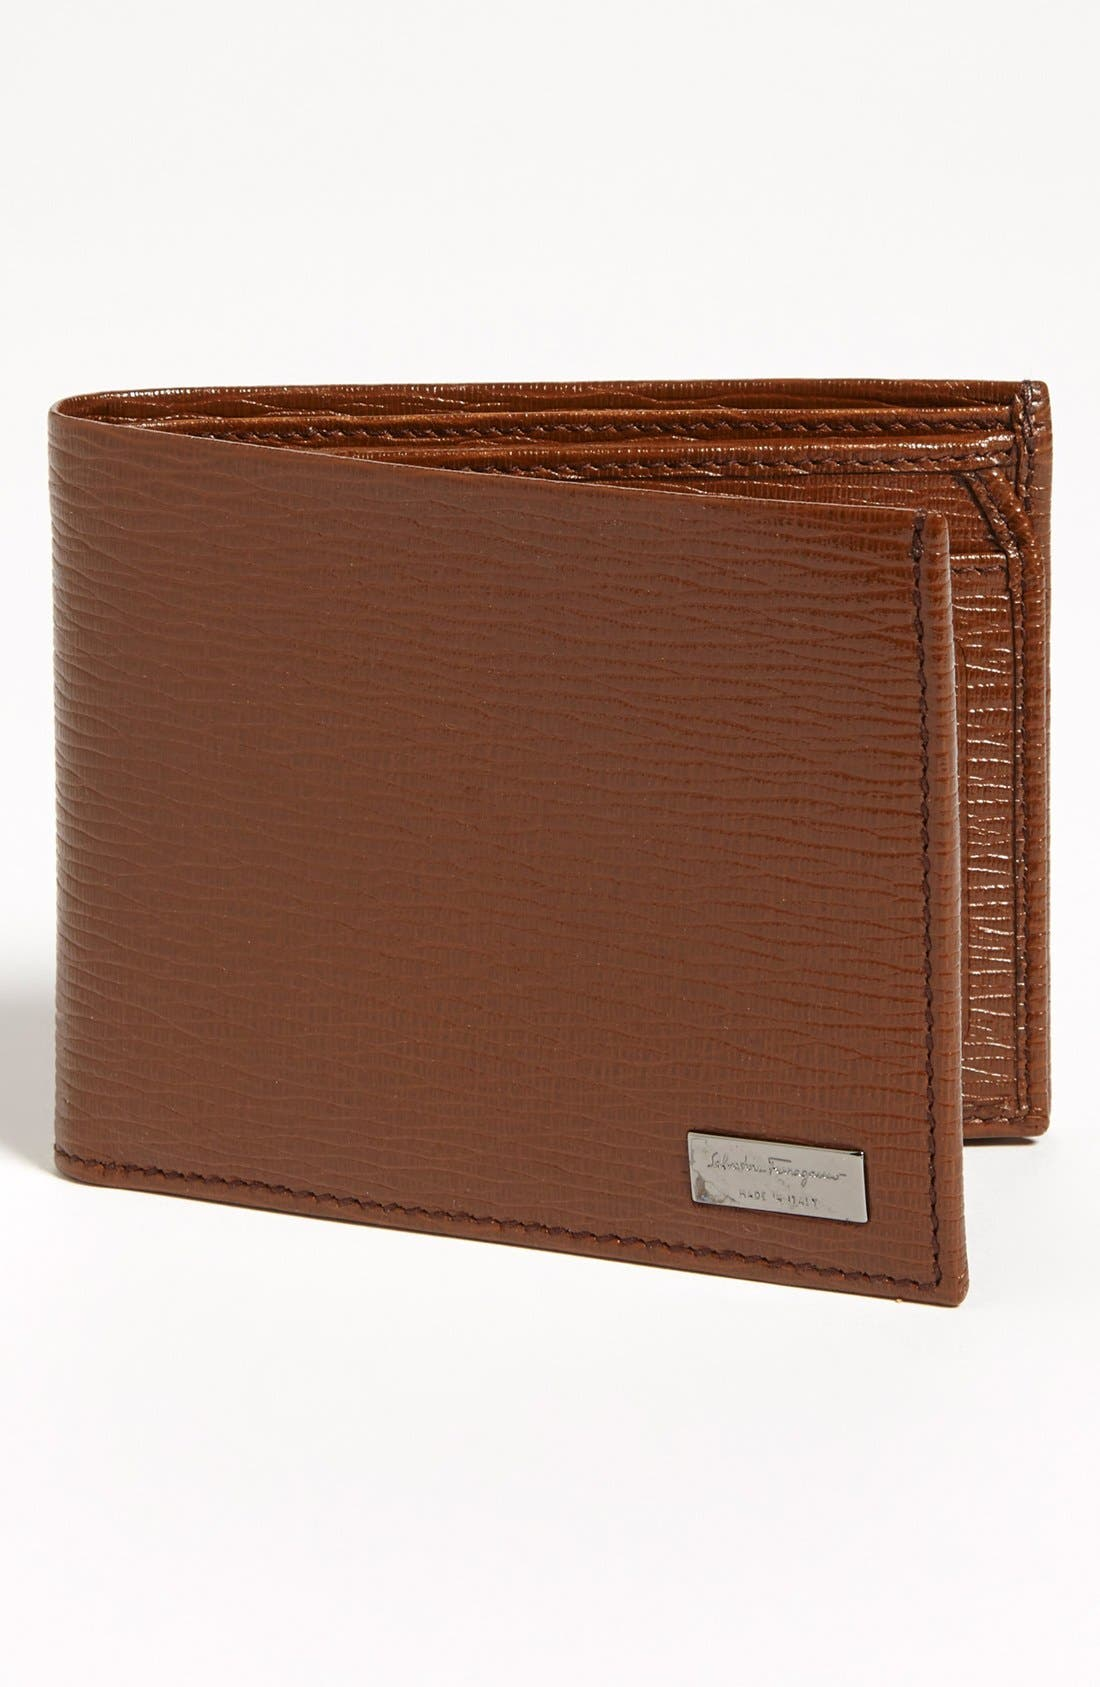 Main Image - Salvatore Ferragamo 'Revival' Wallet